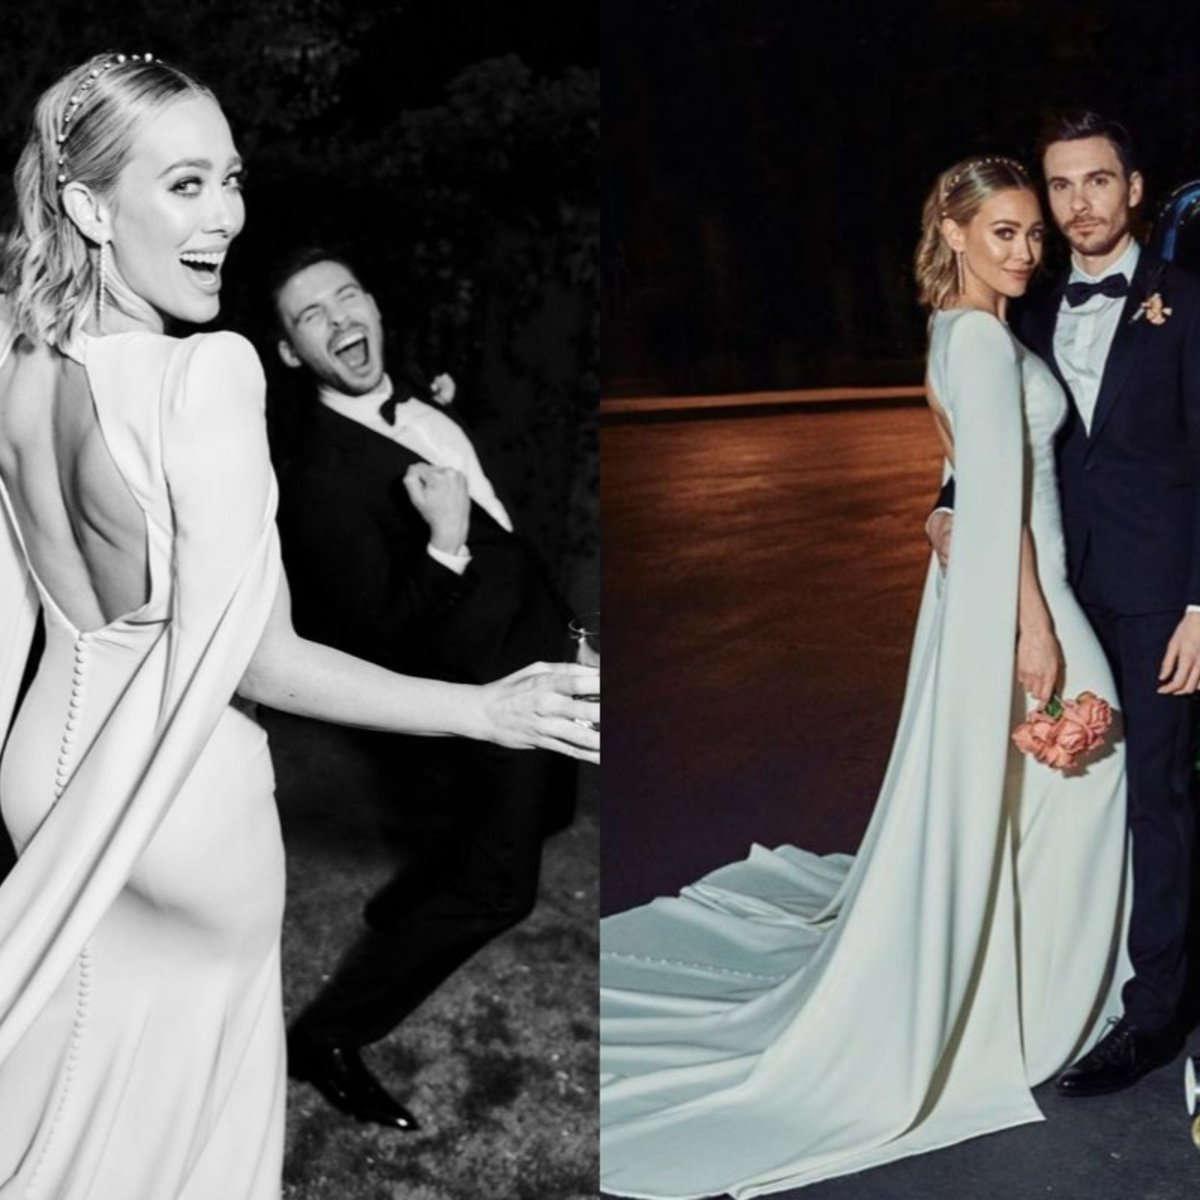 Hilary Duff Wedding Everything We Know About Her Sunset Nuptials